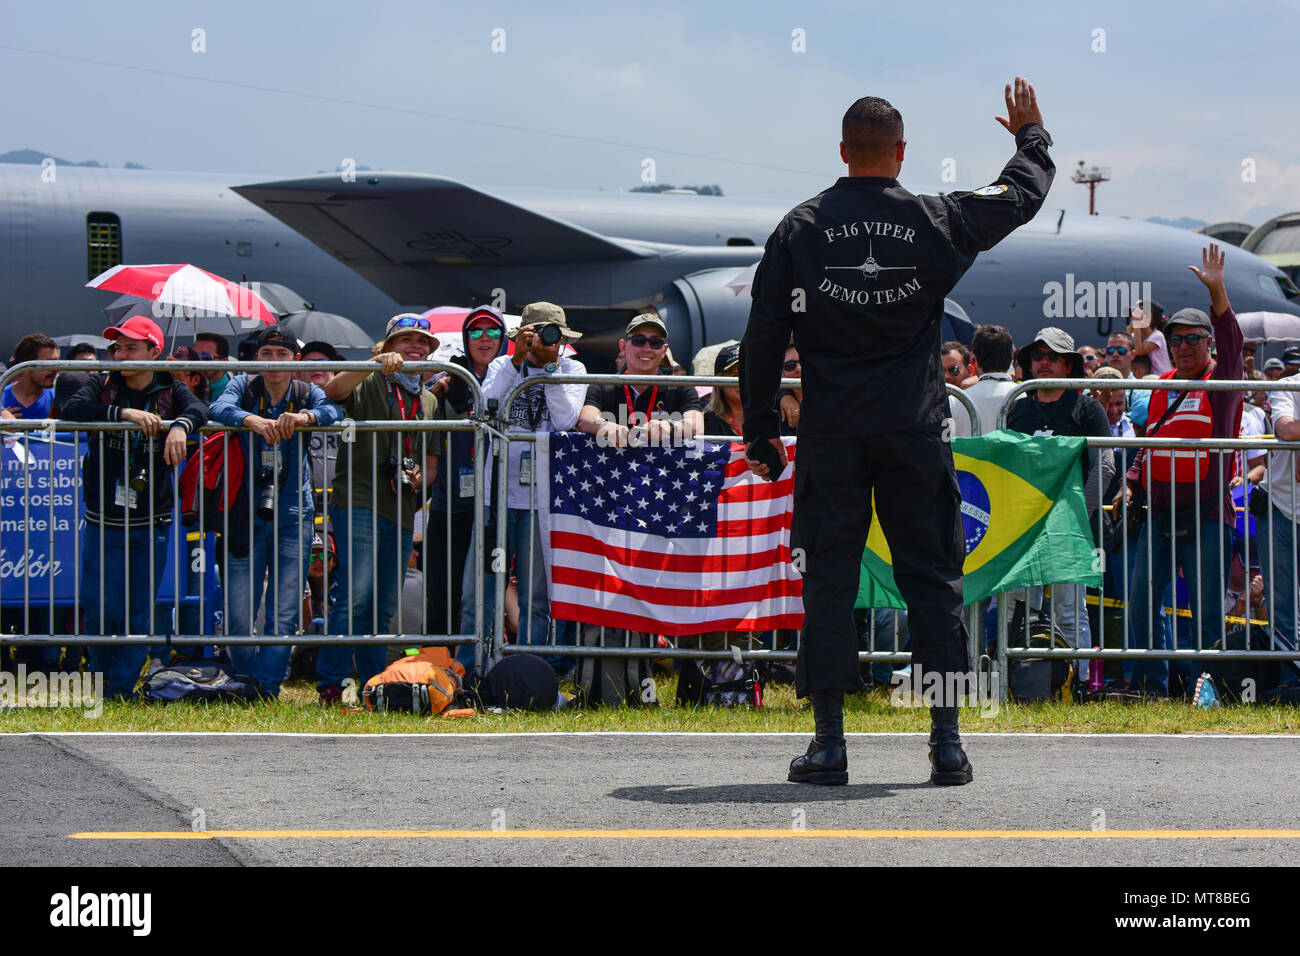 U.S. Air Force Tech. Sgt. Stephen Mullins, an avionics technician assigned to the Air Combat Command's Viper East Demo Team, waves to the crowd at José María Córdova International Airport during Feria Aeronautica Internacional—Colombia 2017 in Rionegro, Colombia, July 15, 2017. The United States Air Force is participating in the four-day air show with two South Carolina Air National Guard F-16s as static displays, plus static displays of a KC-135, KC-10, along with an F-16 aerial demonstration by the Air Combat Command's Viper East Demo Team. United States military participation in the air sho - Stock Image